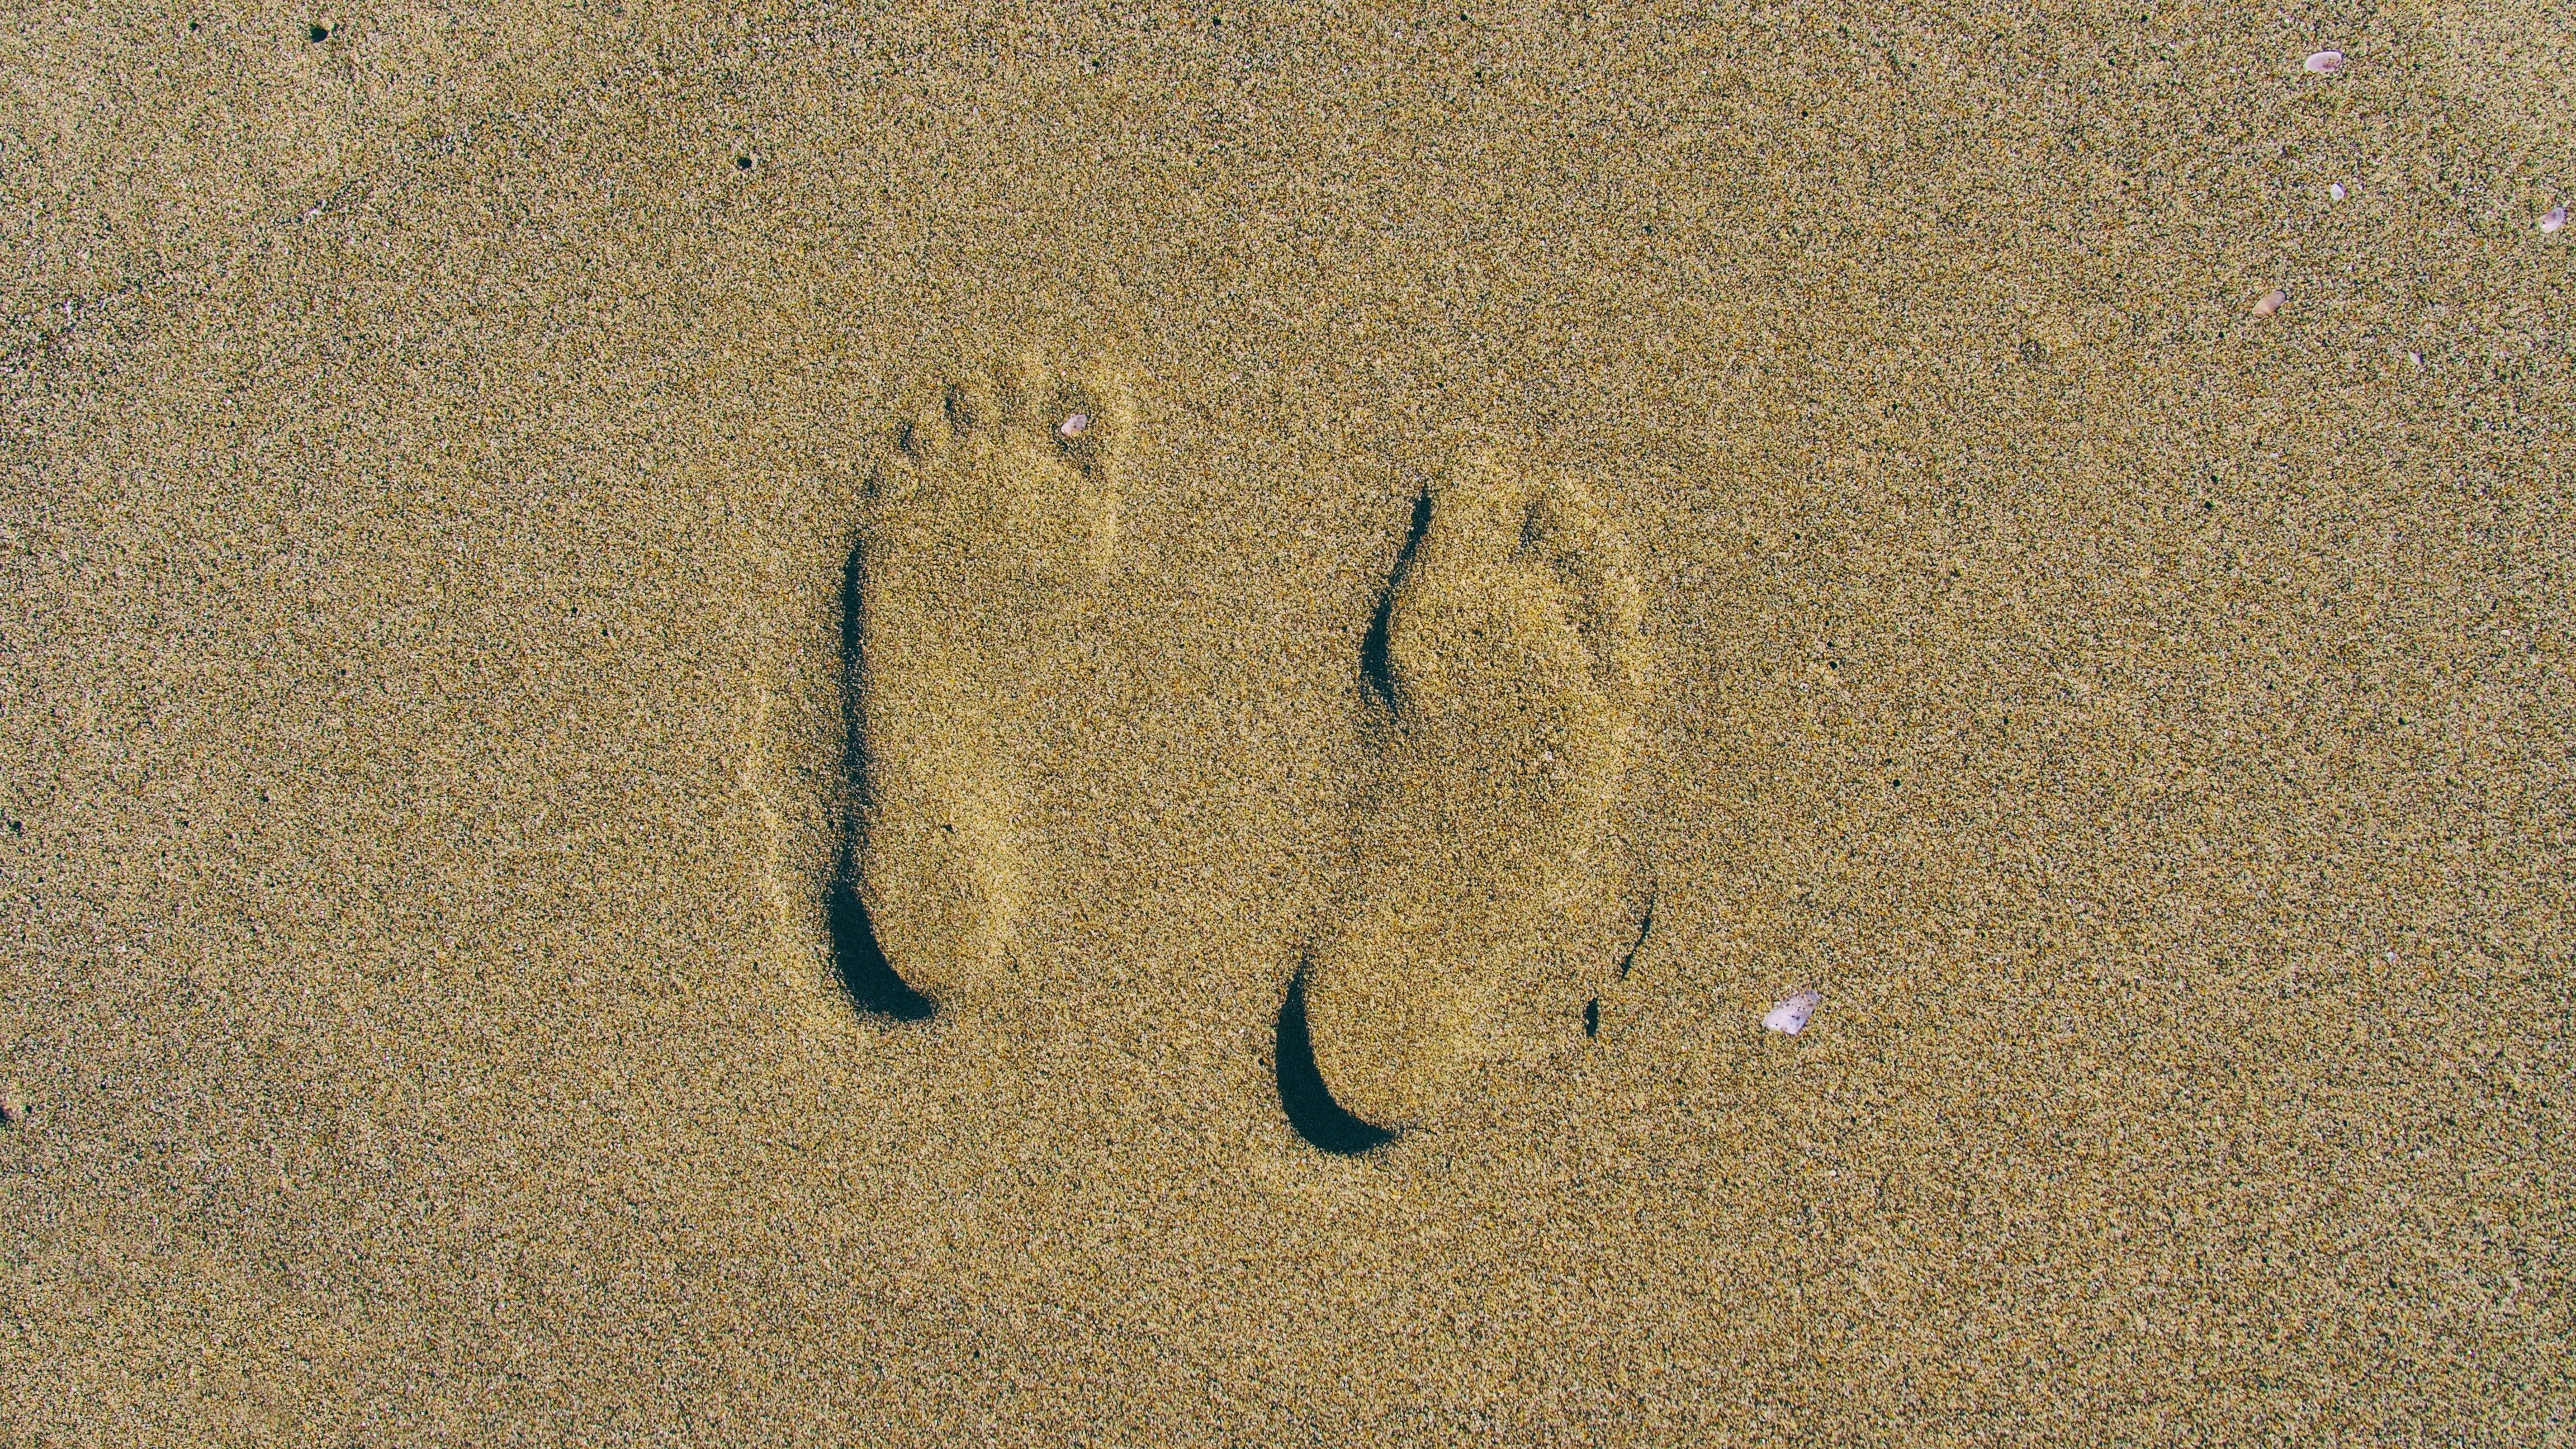 person's foot print on brown sands